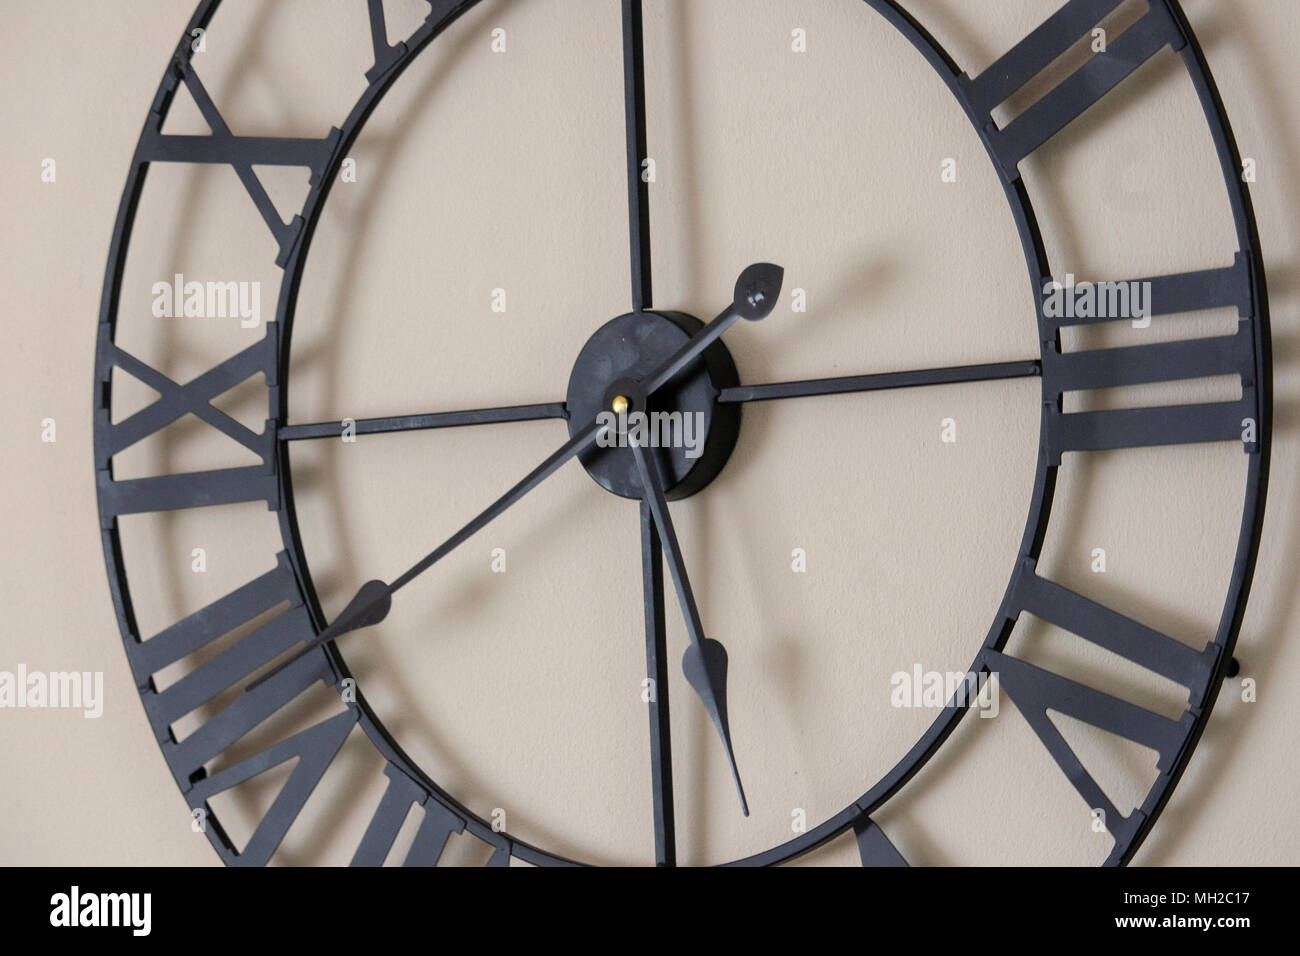 Black Clock Face with Roman Numerals and White Background - Stock Image